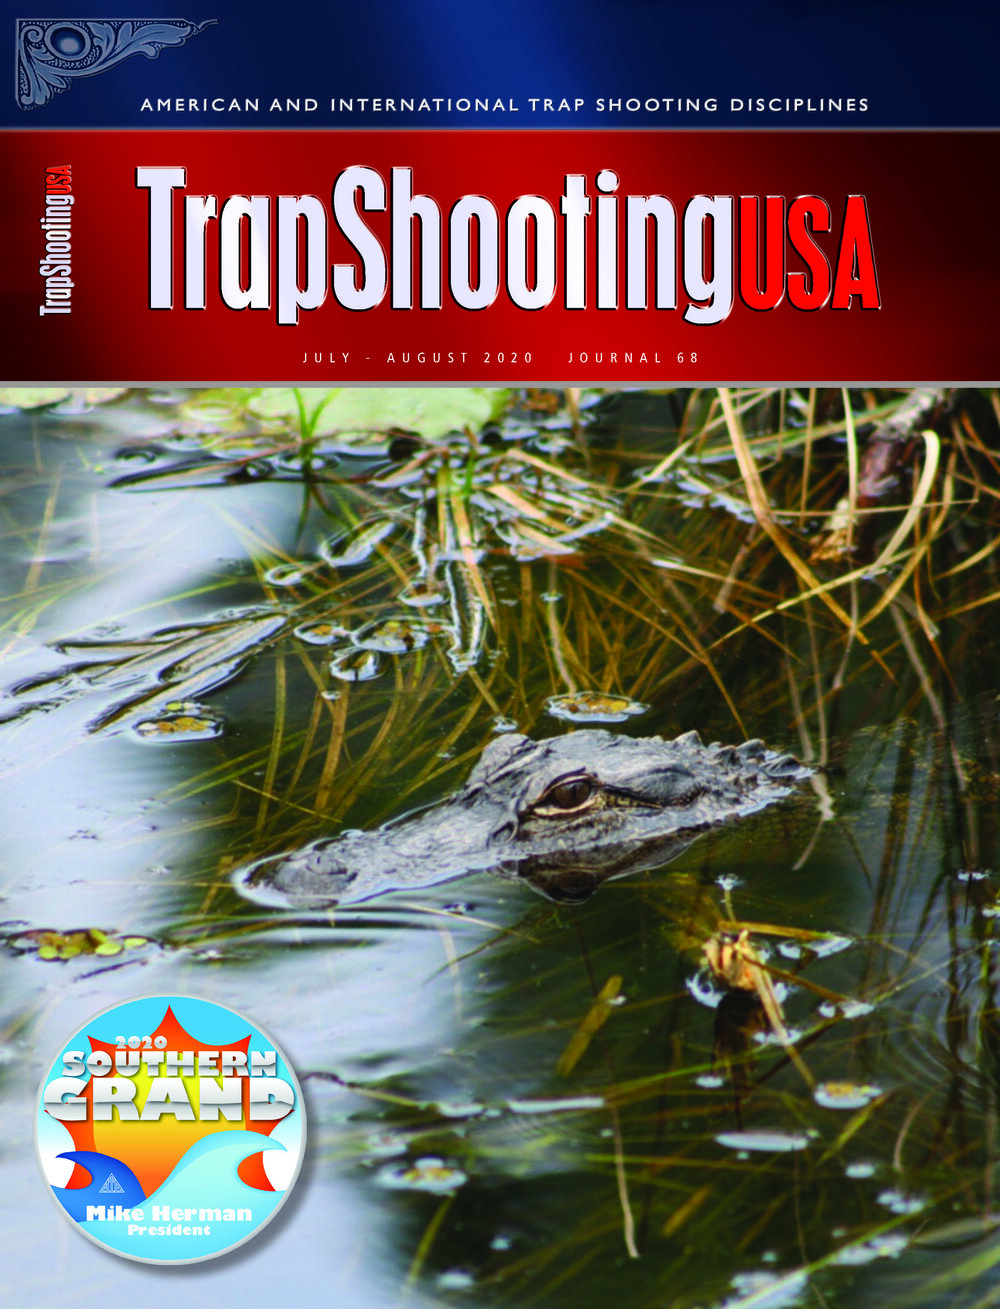 TrapshootingUSA article